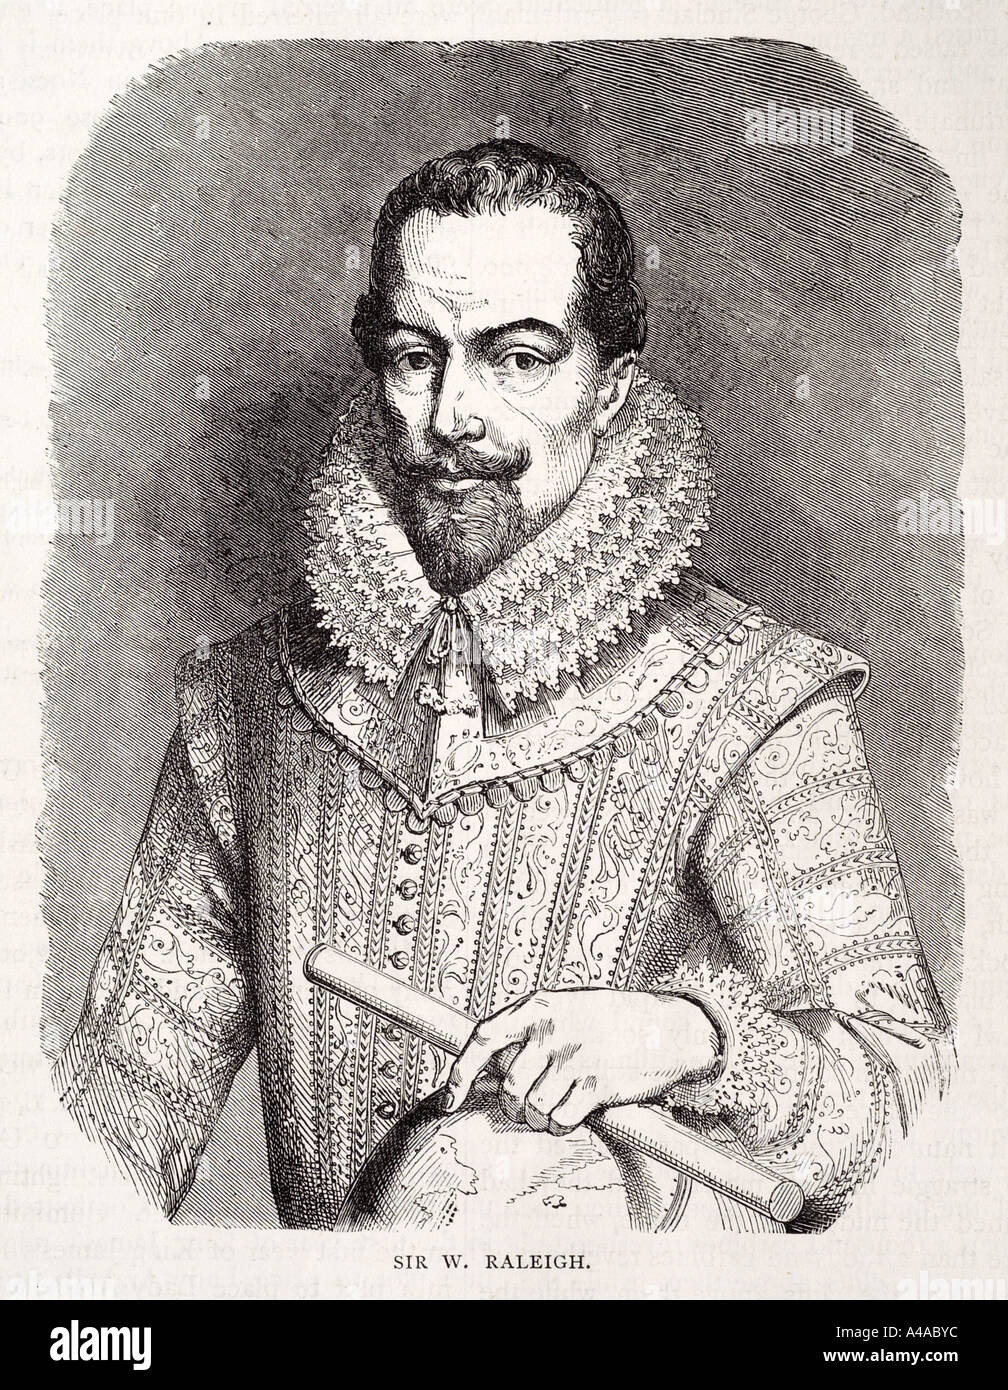 sir walter raleigh portrait costume beard moustache telescope discover explore - Stock Image